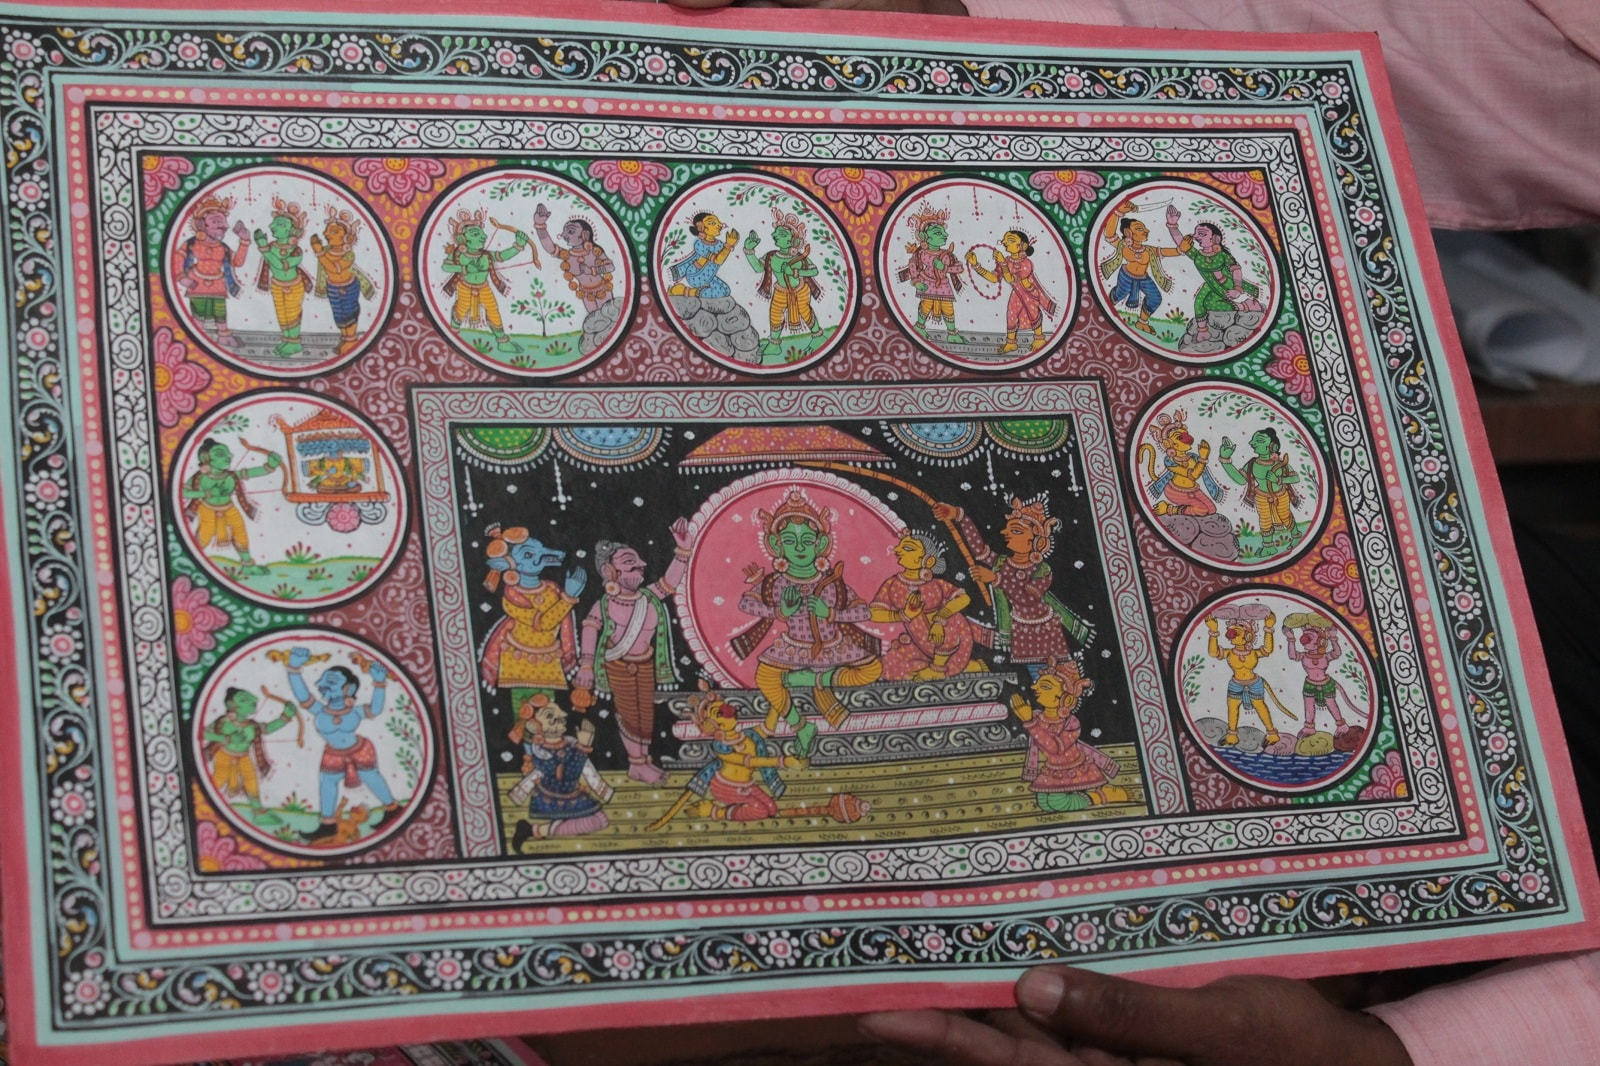 Important scenes from the great epic 'Ramayana' can be seen. Artists take up to two weeks or more to paint one such painting. The intricacies and the size of the image determine the time a painting takes to complete.